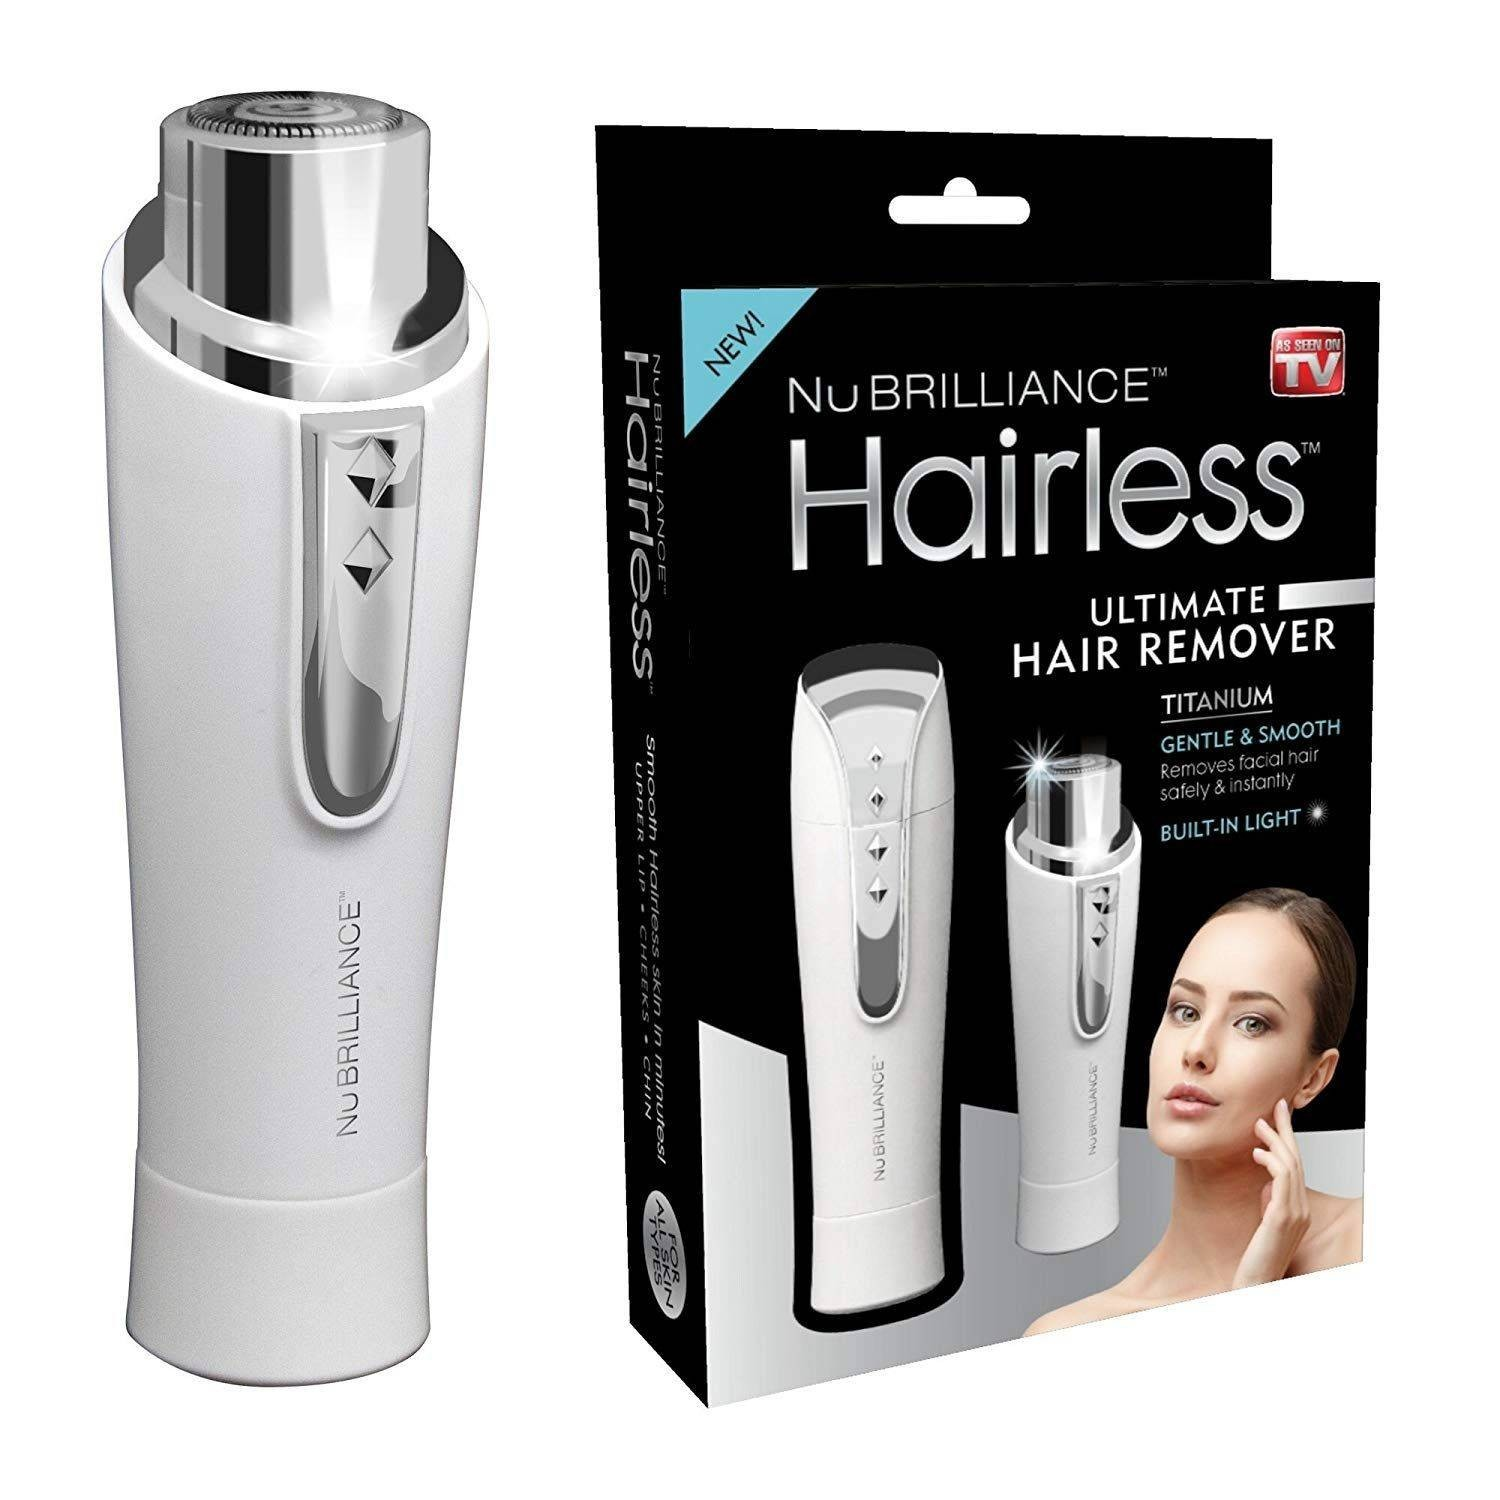 Epilator facial portabil, HairLess Titanium imagine techstar.ro 2021